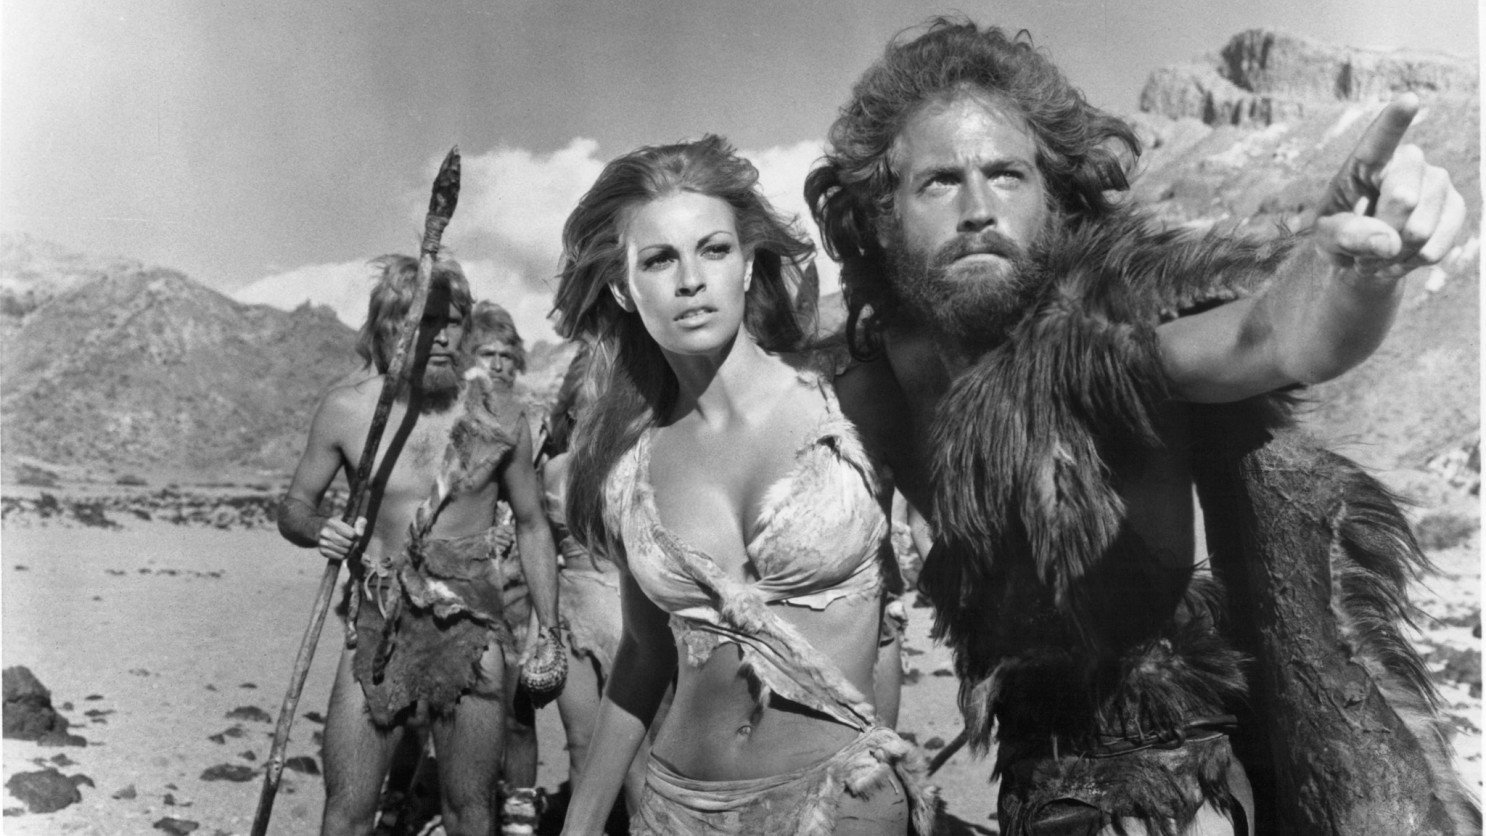 Classic Hollywood: Raquel Welch reflects on her life as a sex symbol and movie star - Los Angeles Times